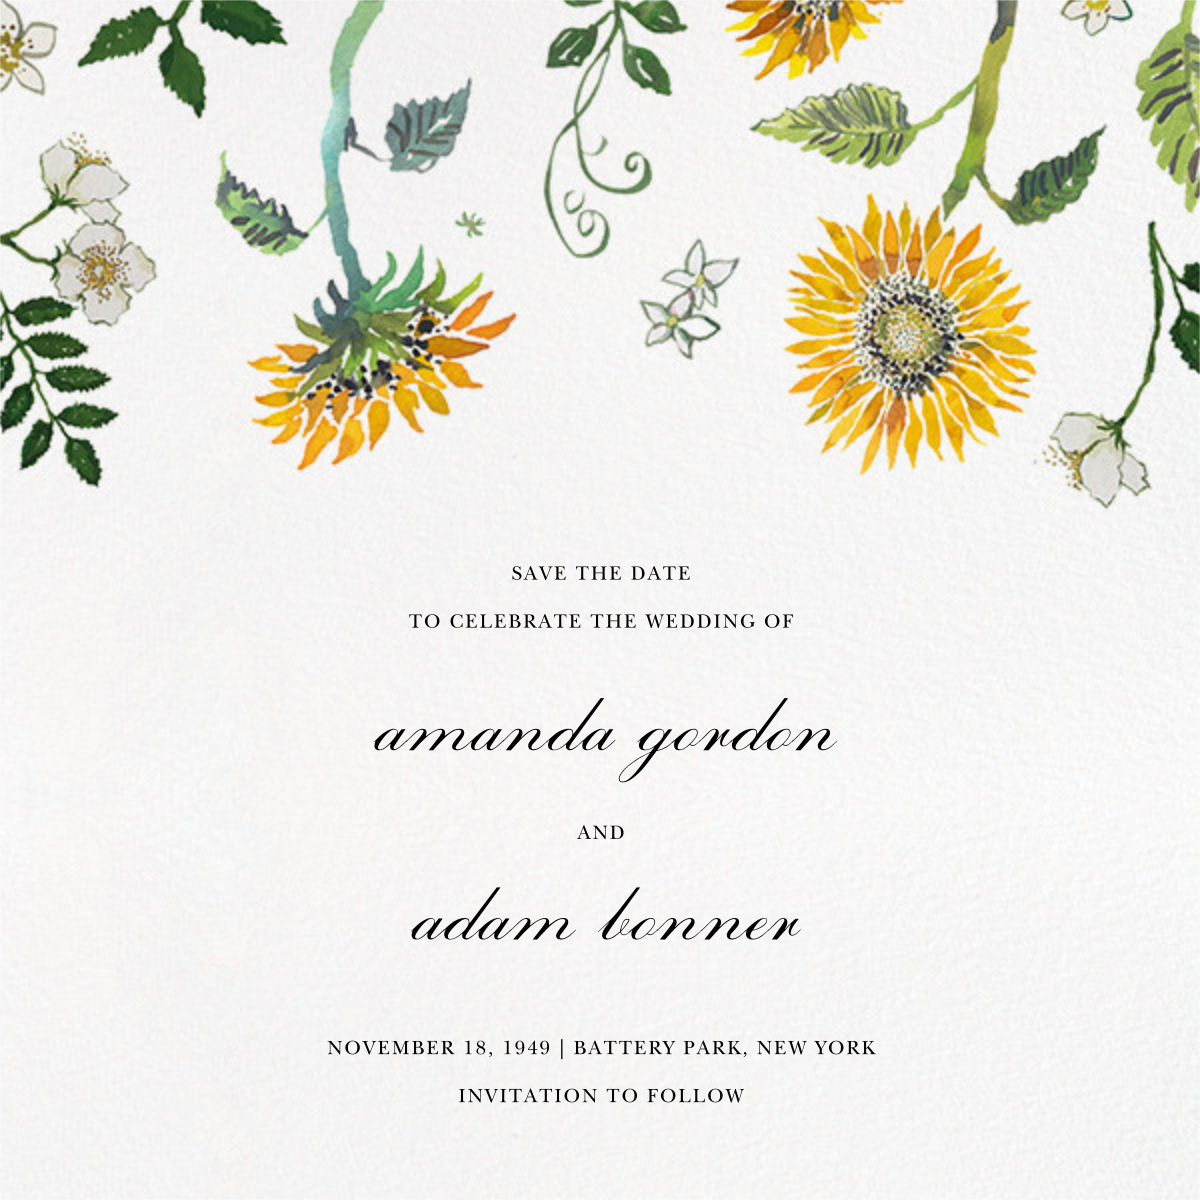 Dandelion Harvest (Save the Date) - Happy Menocal - Save the date